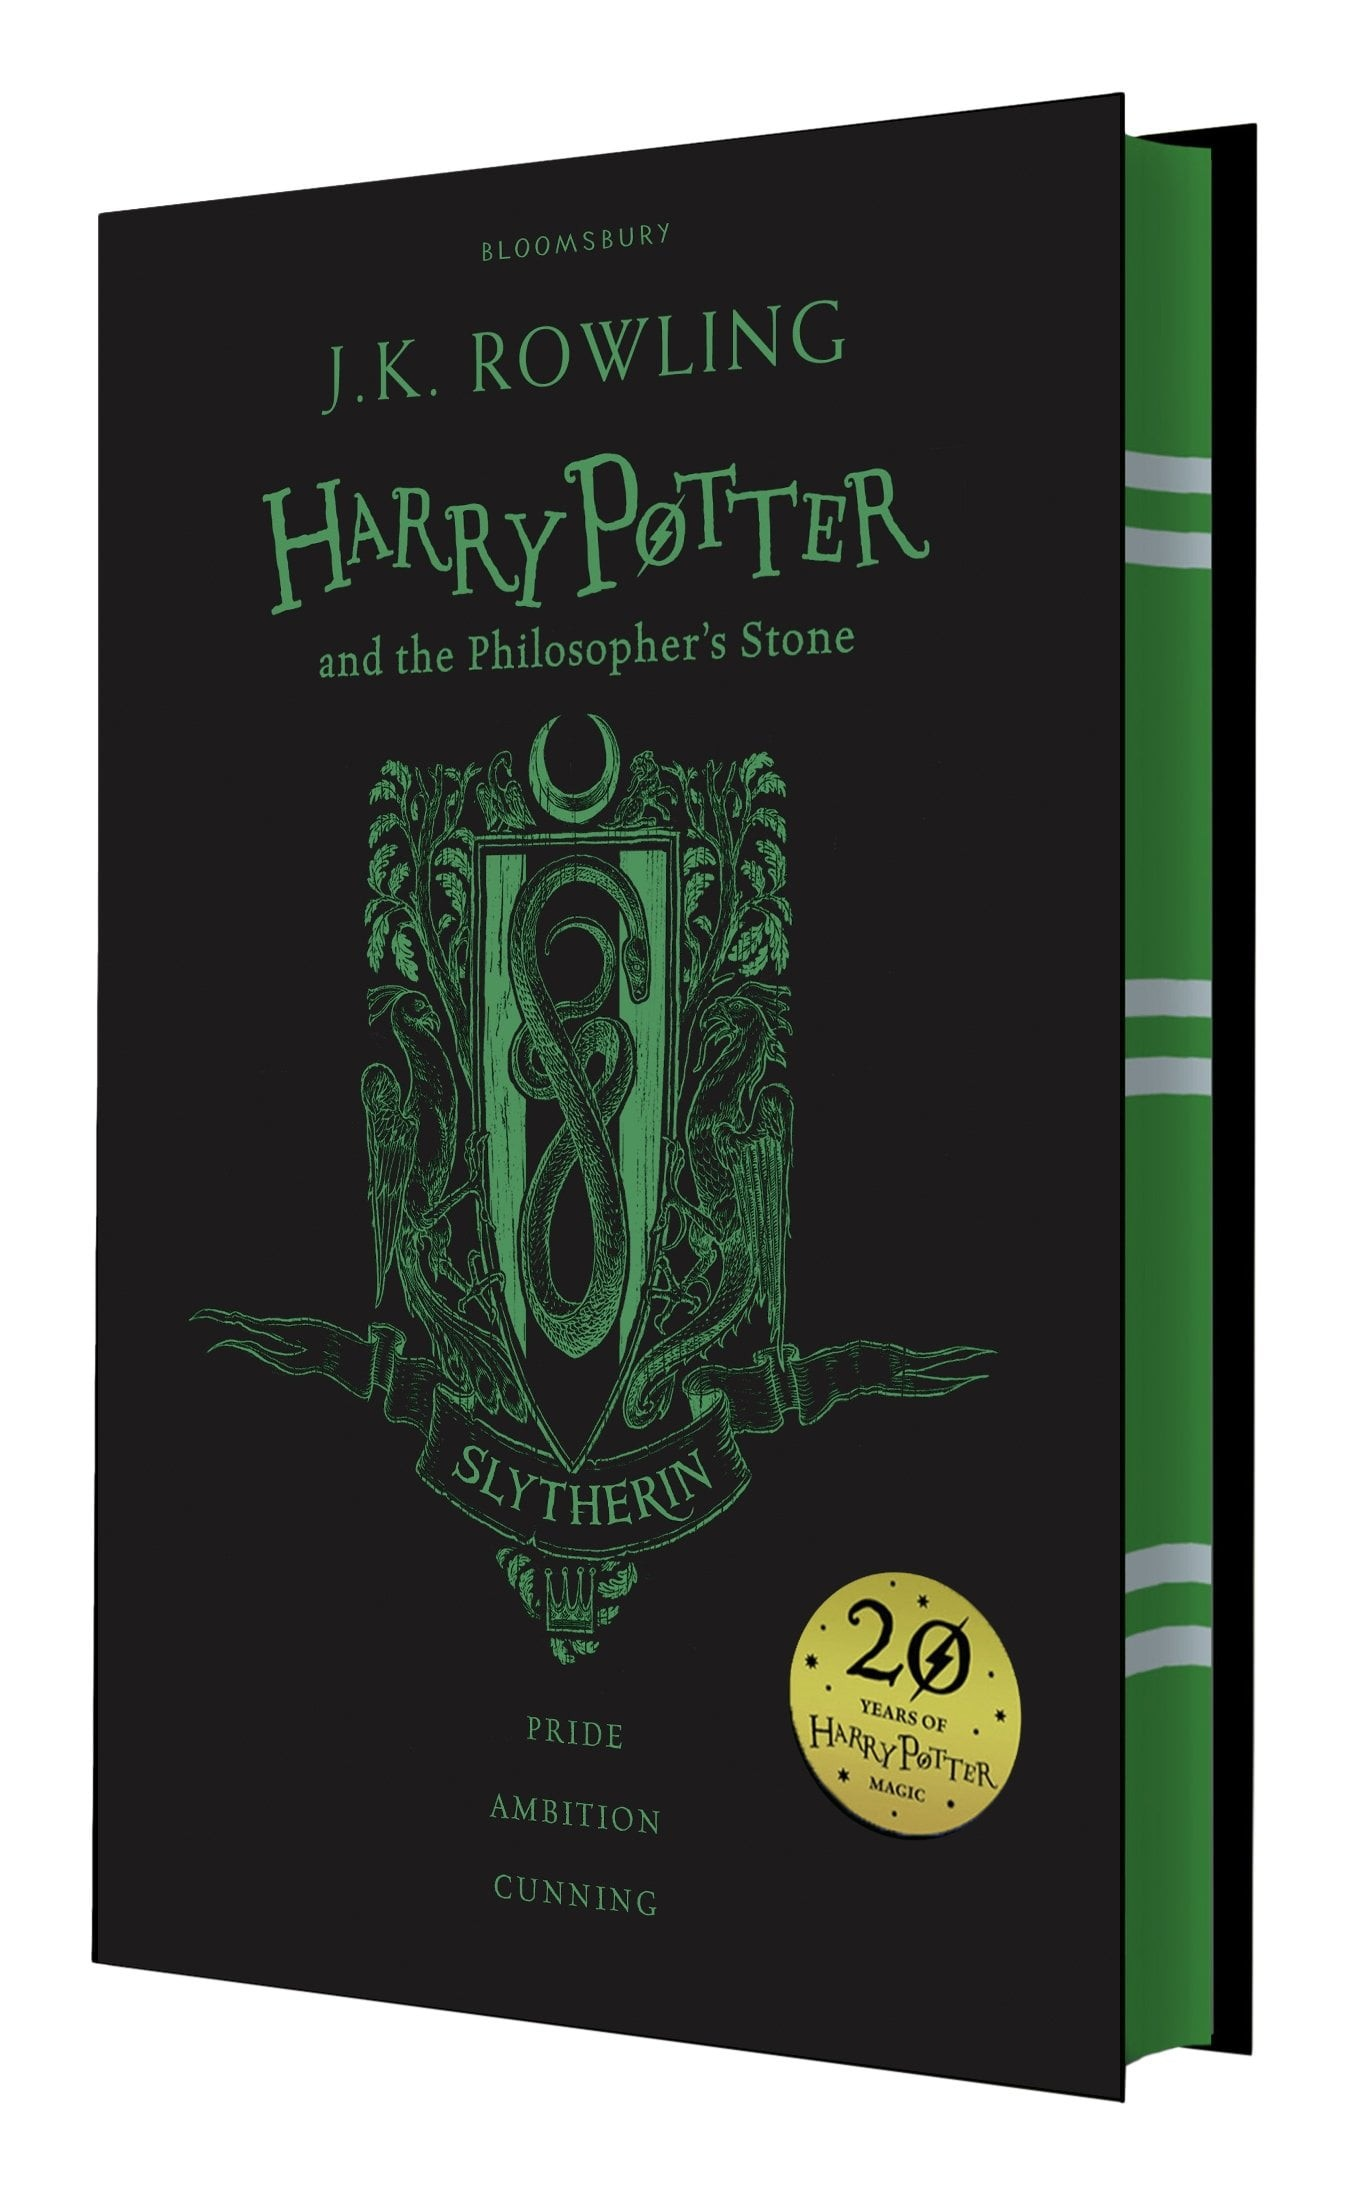 harry potter and the philosopher's stone slytherin edition - hardback